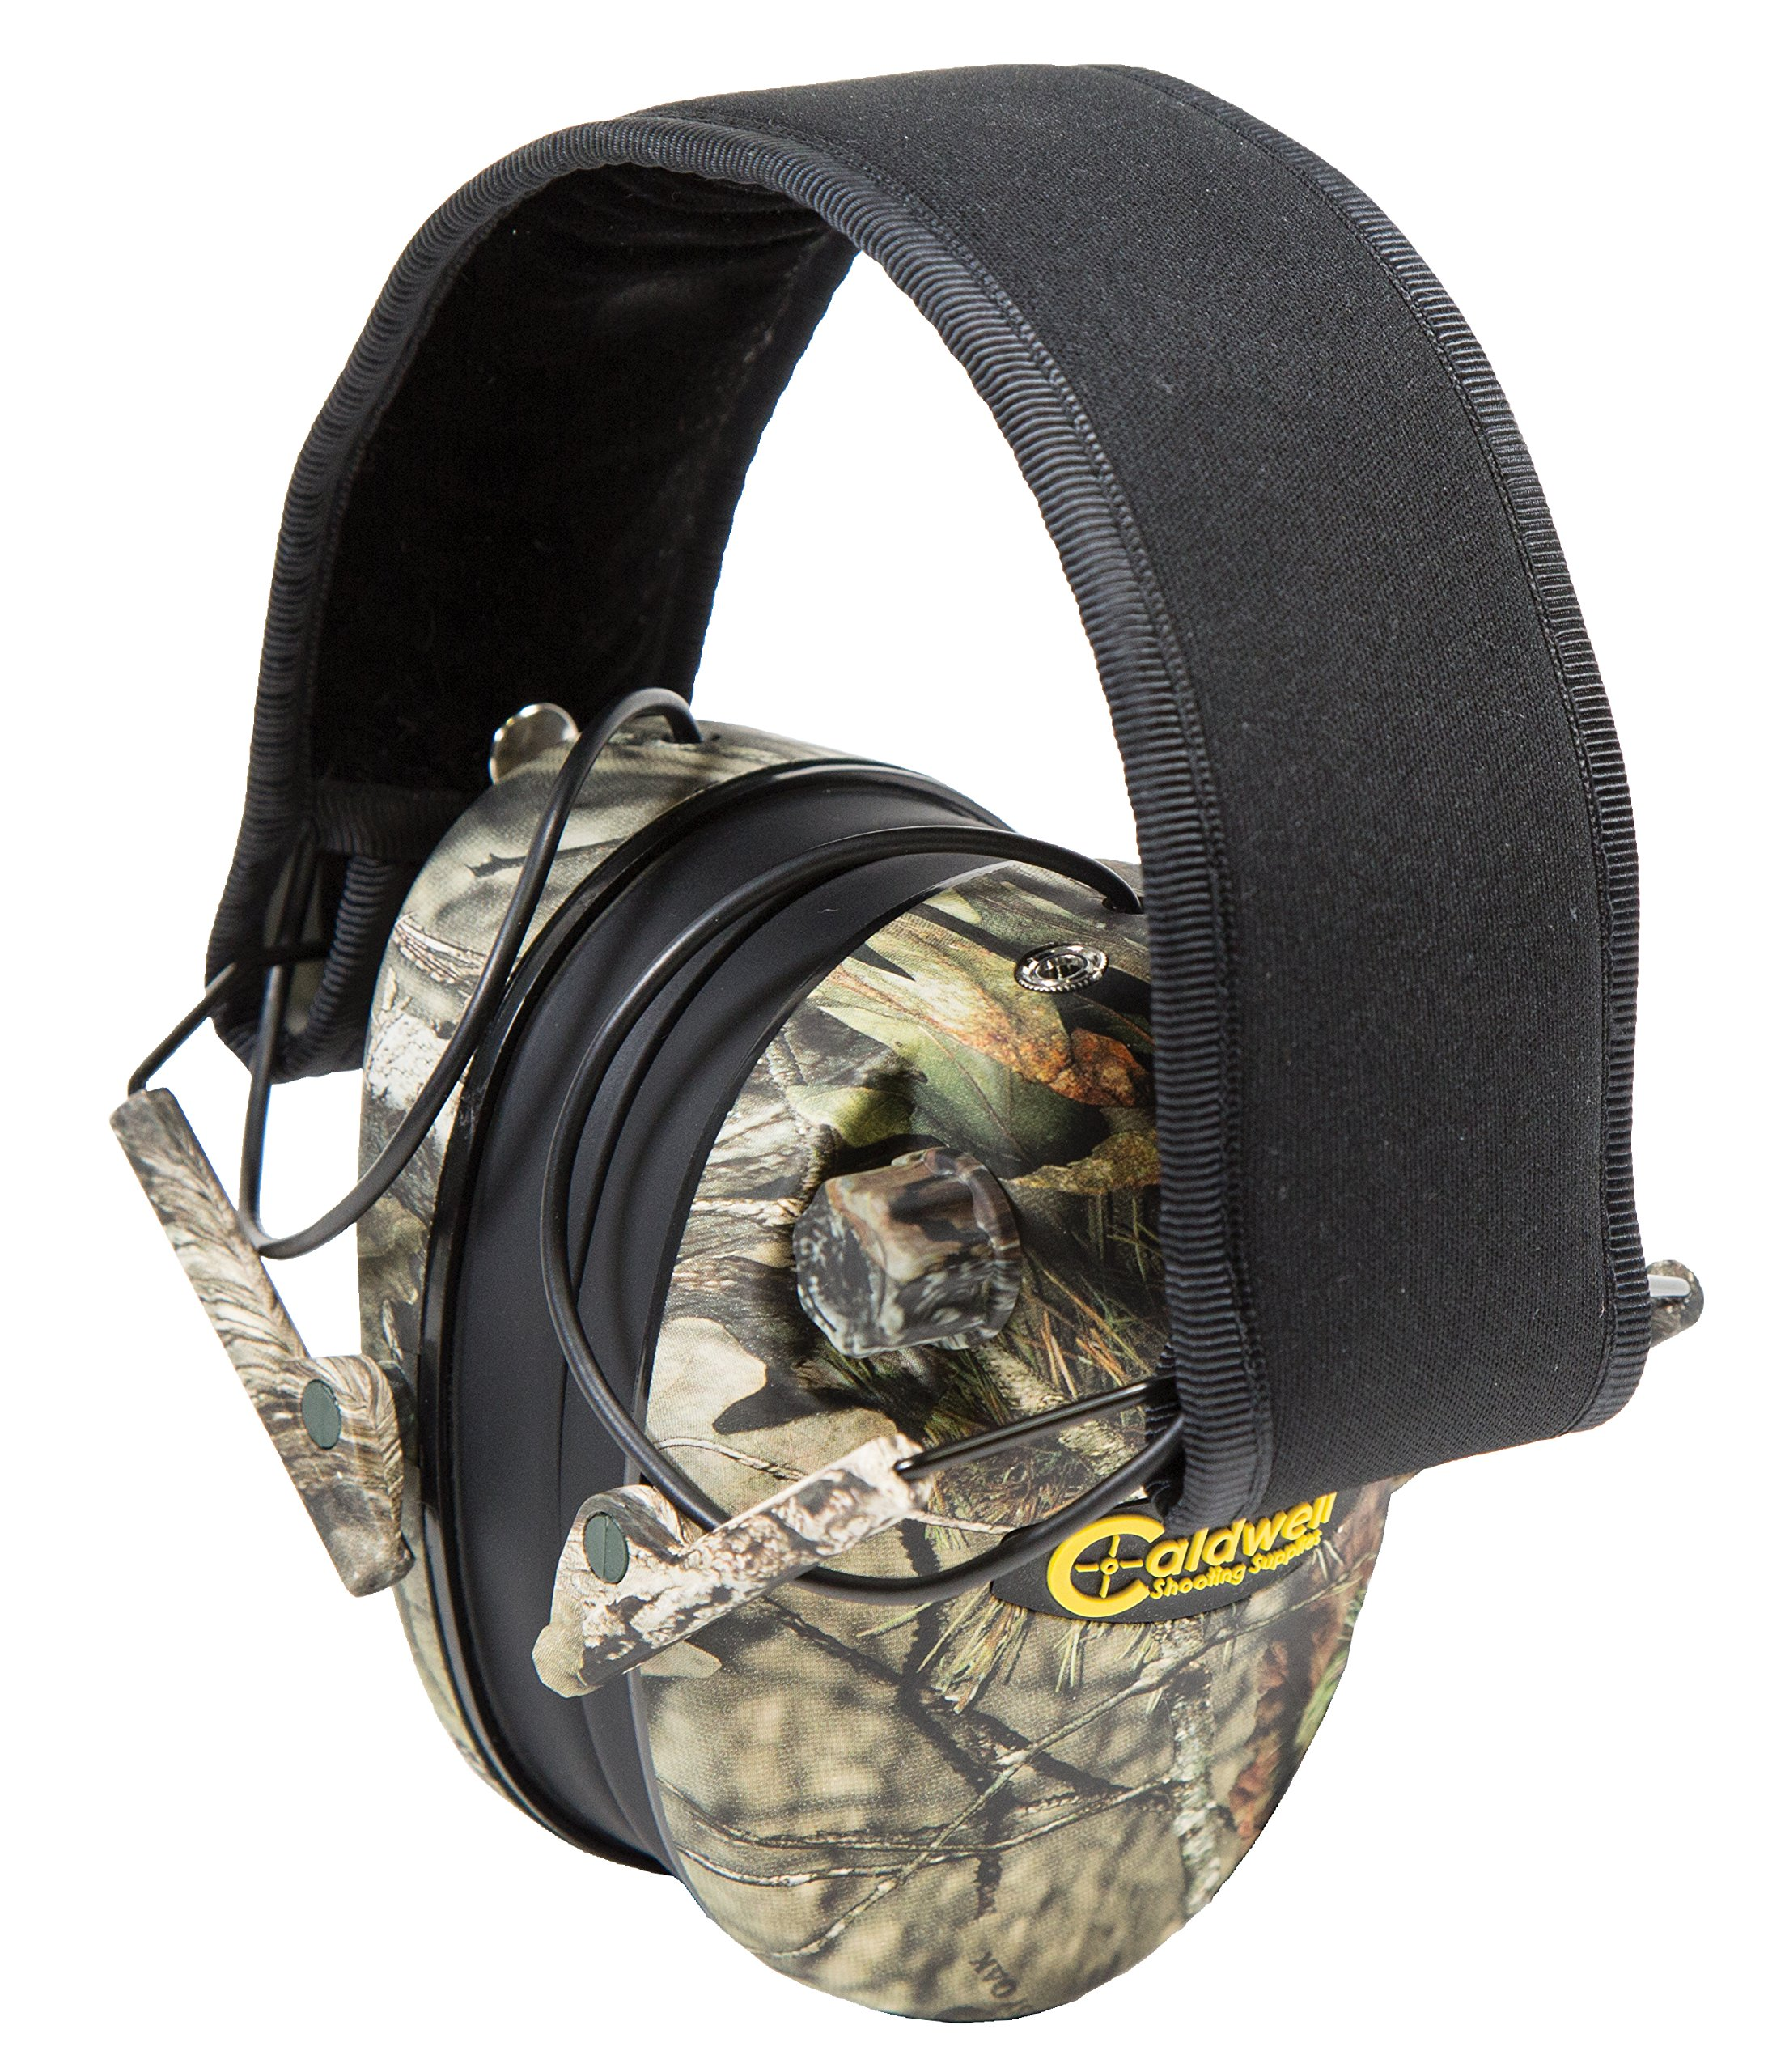 Caldwell E-Max Low Profile Electronic 23 NRR Hearing Protection with Sound Amplification and Adjustable Earmuffs for Shooting, Hunting and Range, Mossy Oak by Caldwell